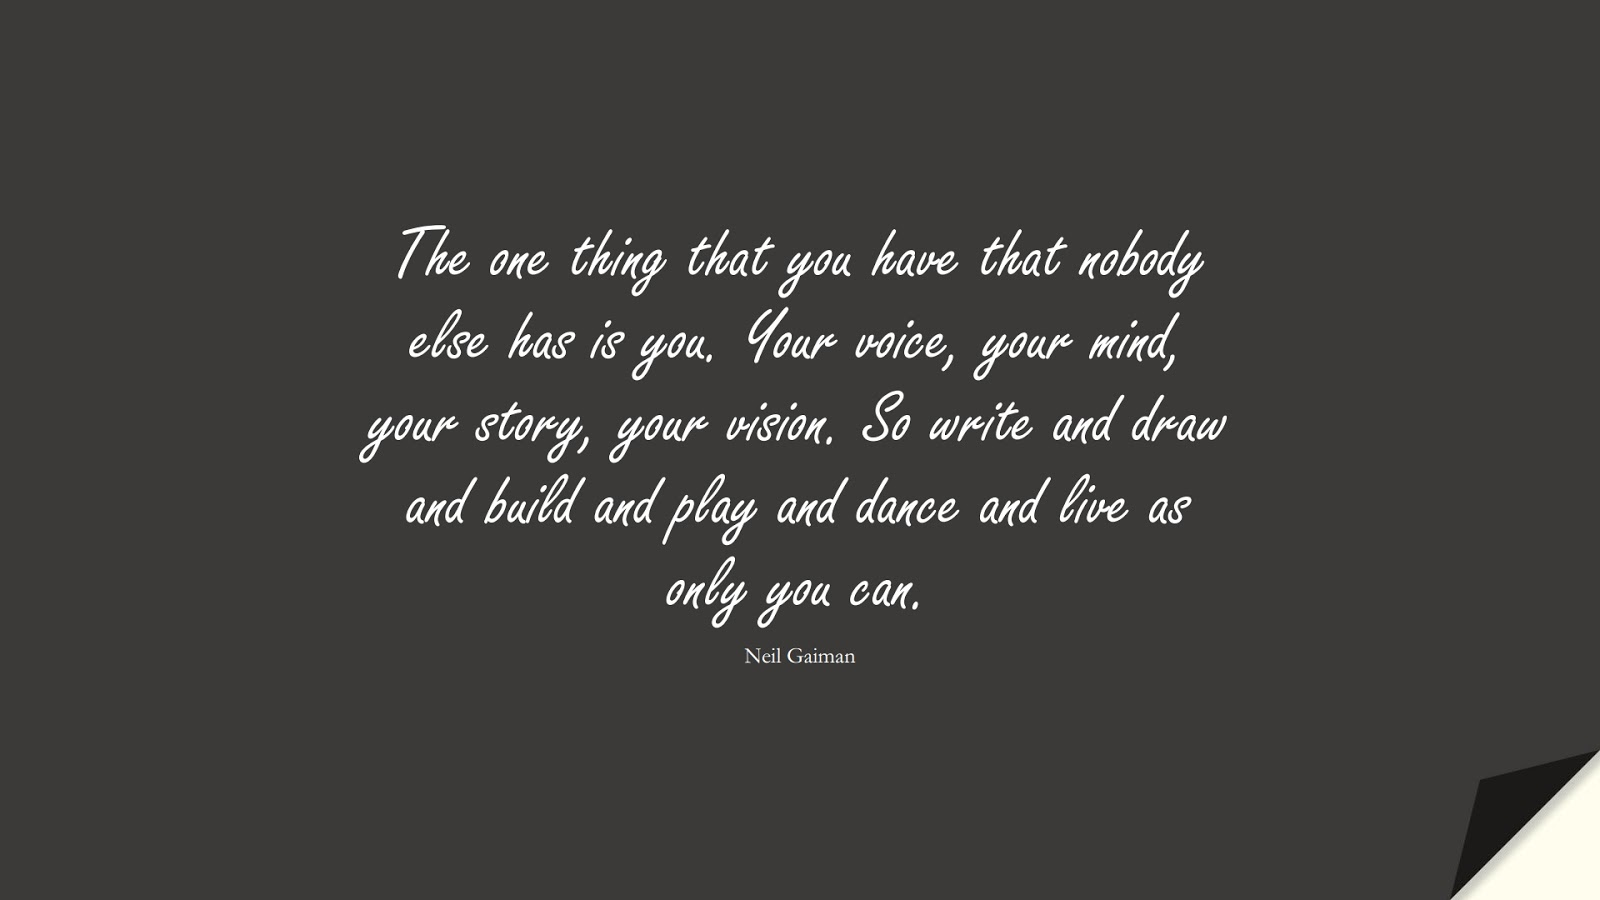 The one thing that you have that nobody else has is you. Your voice, your mind, your story, your vision. So write and draw and build and play and dance and live as only you can. (Neil Gaiman);  #LifeQuotes